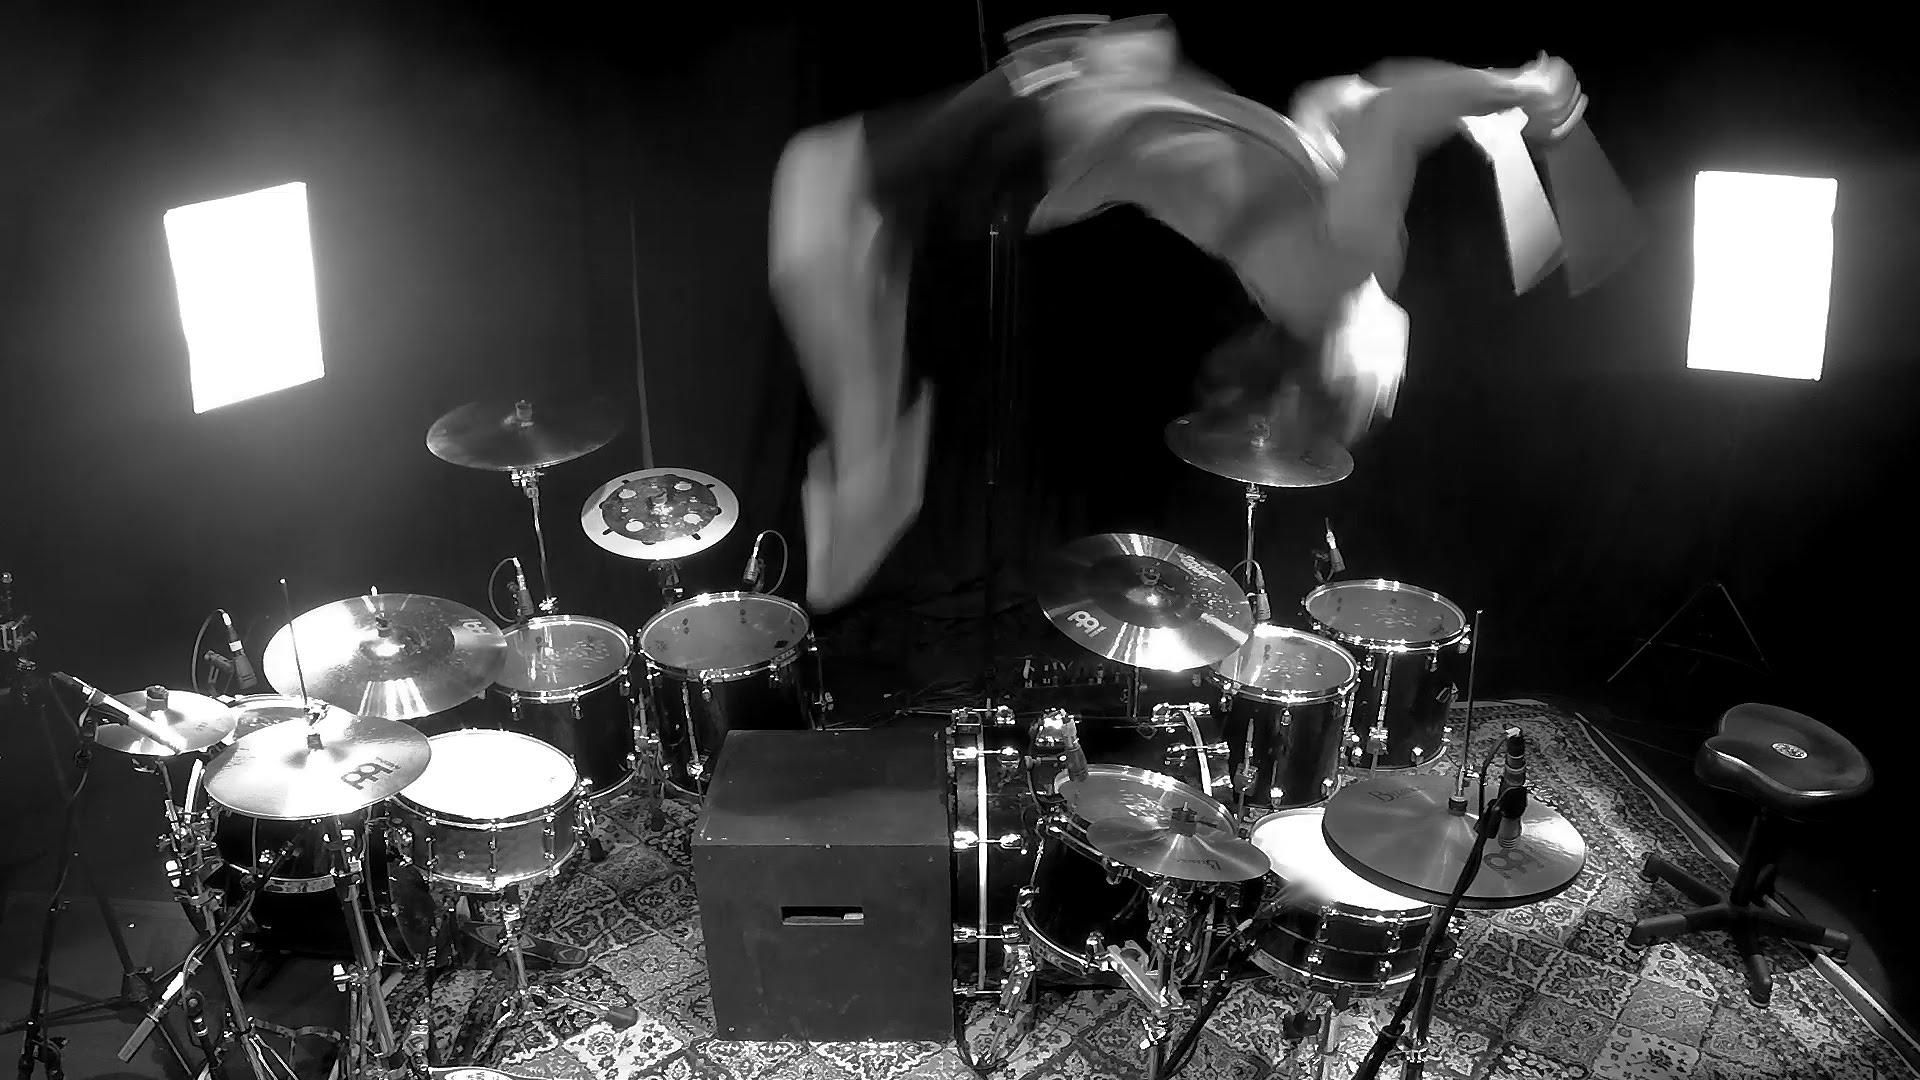 Drummer Casually Back Flips During Solo